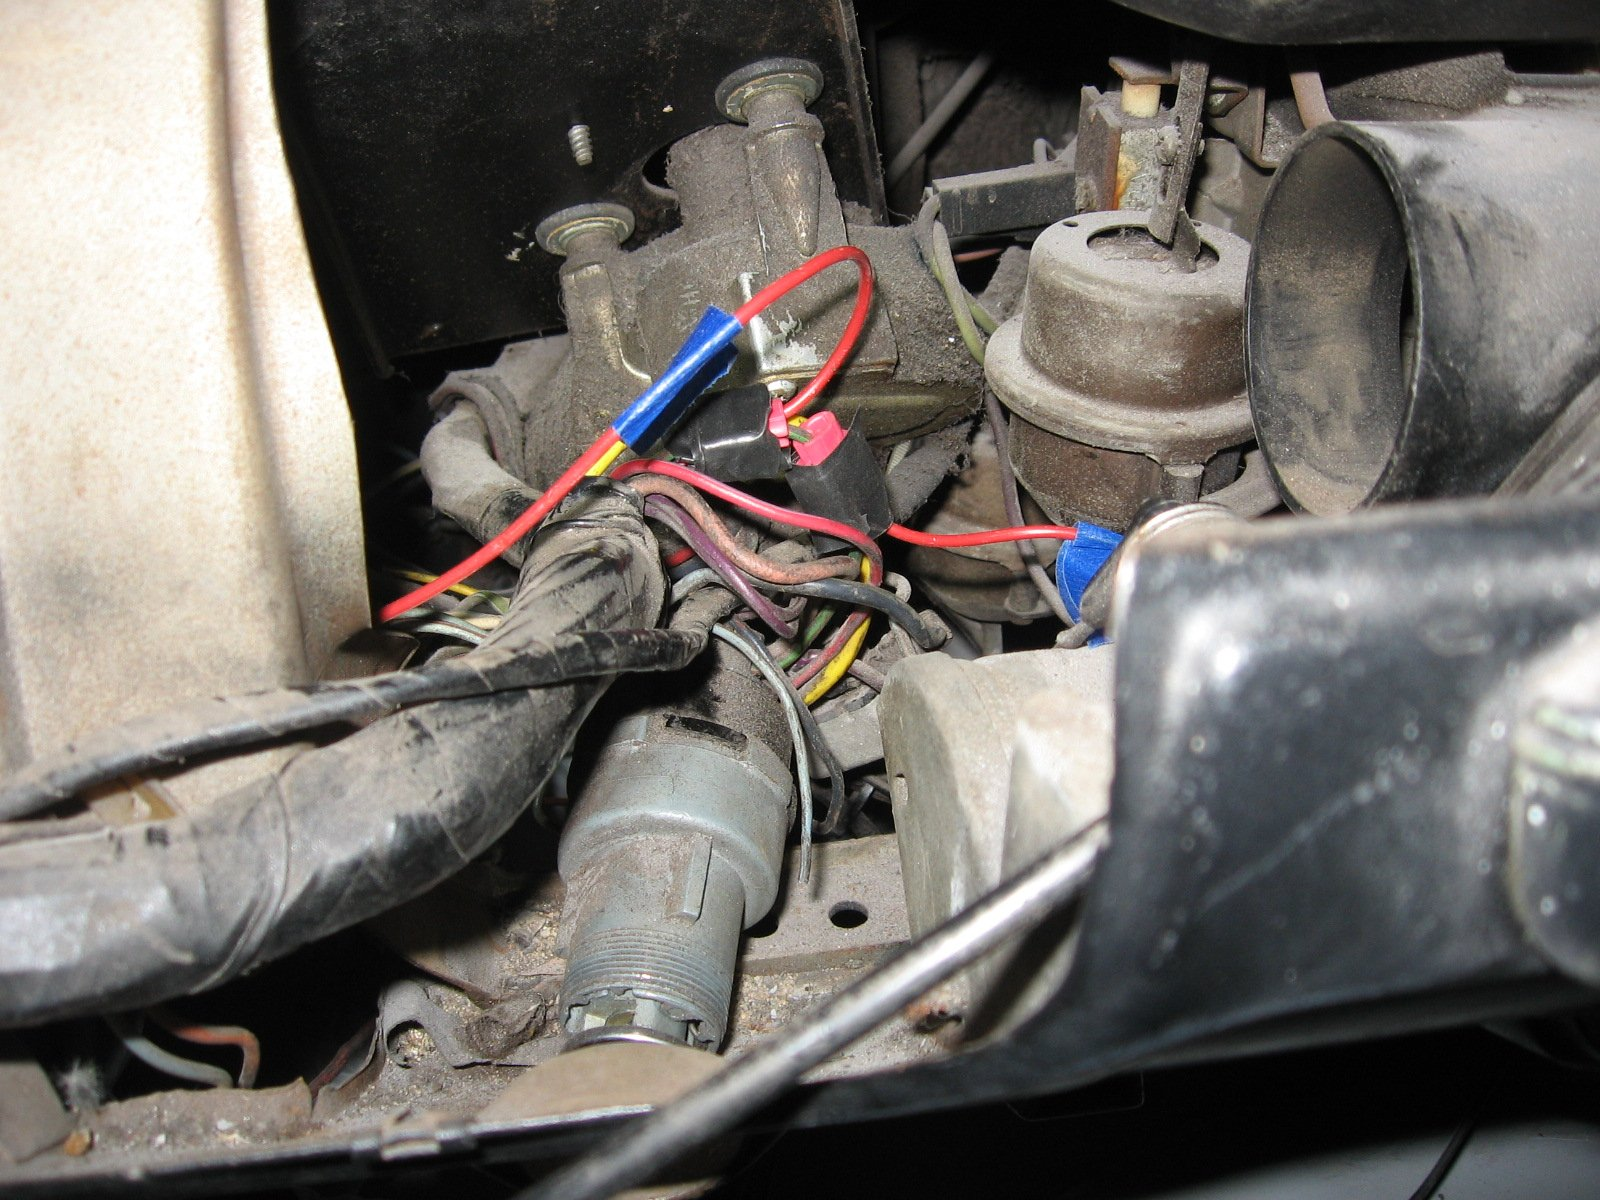 350810d1401329026 ways bypass resistor wire img_2421 ways to bypass resistor wire? ford mustang forum External Resistor Coil Wiring at gsmx.co